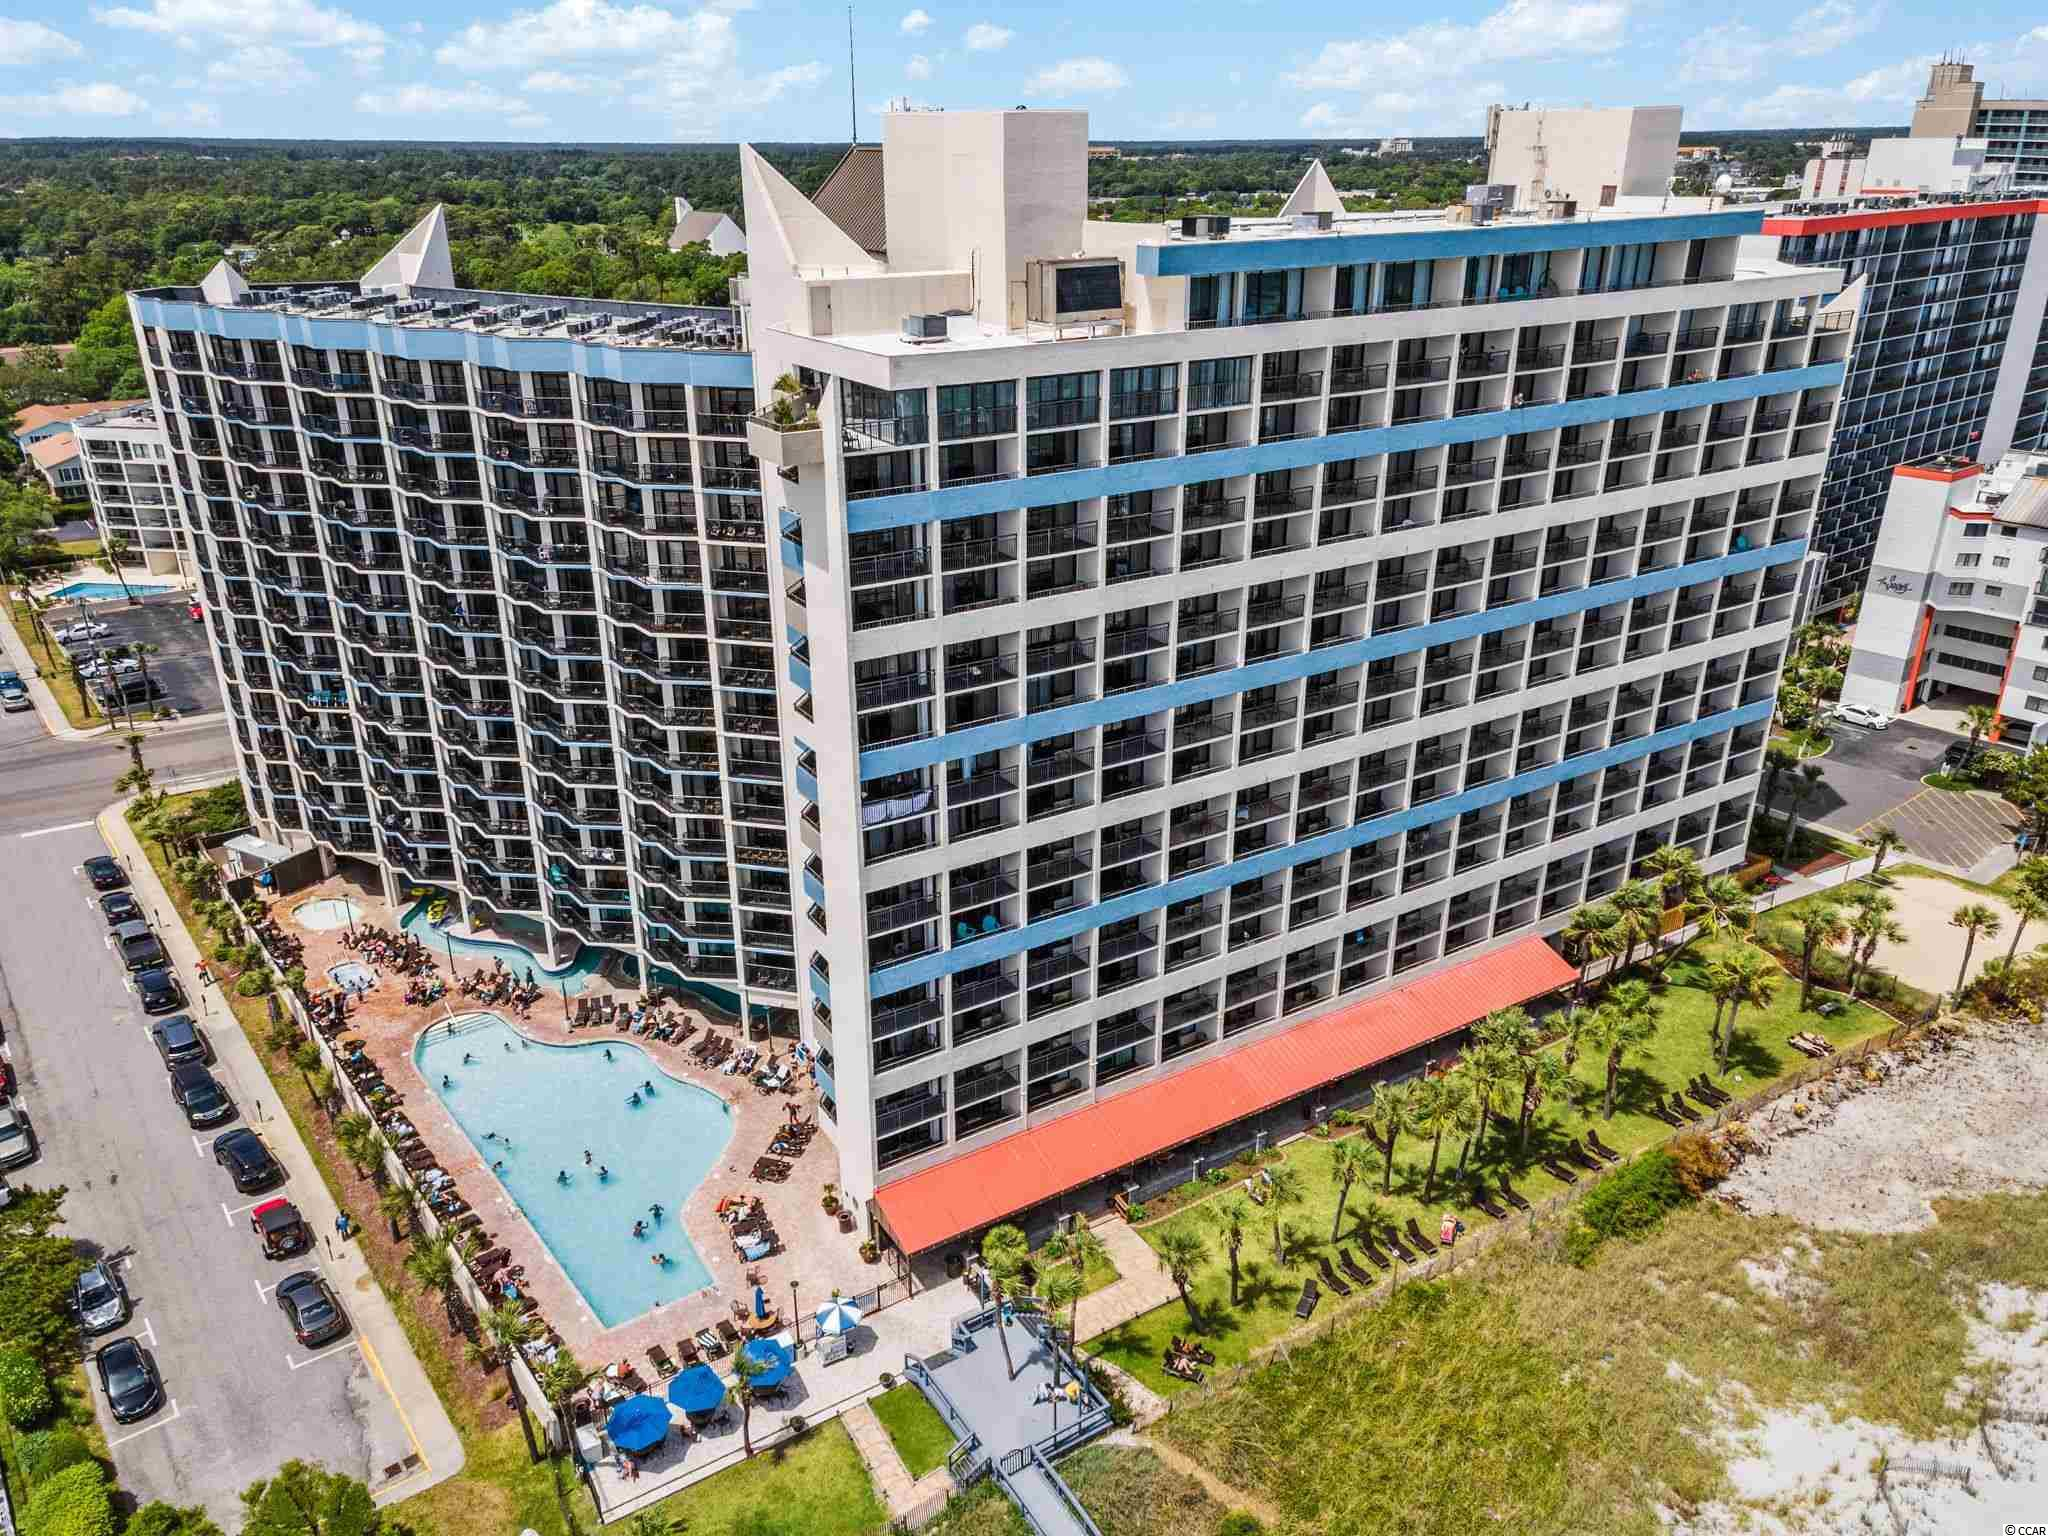 """RARE 2 bedroom / 2 bath condo NOW for sale in the uber-popular Ocean Reef Resort in Myrtle Beach, SC.     There are only 13 of these two bedroom condos in the resort so these rarely come for sale.   # 516 Ocean Reef is ideally located on the 5th floor (not too high, not too low) and has excellent DIRECT OCEANFRONT VIEWS.    This beautiful condo has been upgraded over the years and features:  Granite kitchen counter tops and granite sink tops in both bathrooms; a full kitchen with raised-panel cabinets with bronzed knobs, full size refrigerator, stove/oven, microwave, undermount sink with goose-neck faucet, and a tiled backsplash; NEW HVAC in Oct 2019; new sofa and new mattresses in 2015, and 2 new 43"""" TV's (1 in 2020 and 1 in March 2021); Washer/dryer inside the condo; new triple-sheet bedding in both bedrooms; 2 double beds in the guest bedroom and a queen bed in the owner's suite; designer berber carpeting in the bedrooms, tiled floors in the kitchen, entry, and baths, and wood-look laminate in the living room; a sleeper sofa; crown molding in the living room; framed mirrors and decorative lighting fixtures in both bathrooms, and tub/shower combos in both bathrooms.  You also have a nice-sized balcony with amazing ocean views.     If you DO decide to leave your gorgeous condo, Ocean Reef Resort has every amenity you should expect in your next vacation retreat, including:  Water park with water slides; outdoor and indoor pools, hot tubs, and lazy river; Breakfast restaurant; bar/lounge; sundry shop; arcade; fitness center; gift shop; and outdoor tiki bar (in season).    Finally, it doesn't hurt that these 2 BR condos are some of the highest grossing rental income producing condos we have anywhere in this area.    So, go ahead and treat yourself and finally purchase an excellent condo with all of the bells-and-whistles you deserve!"""